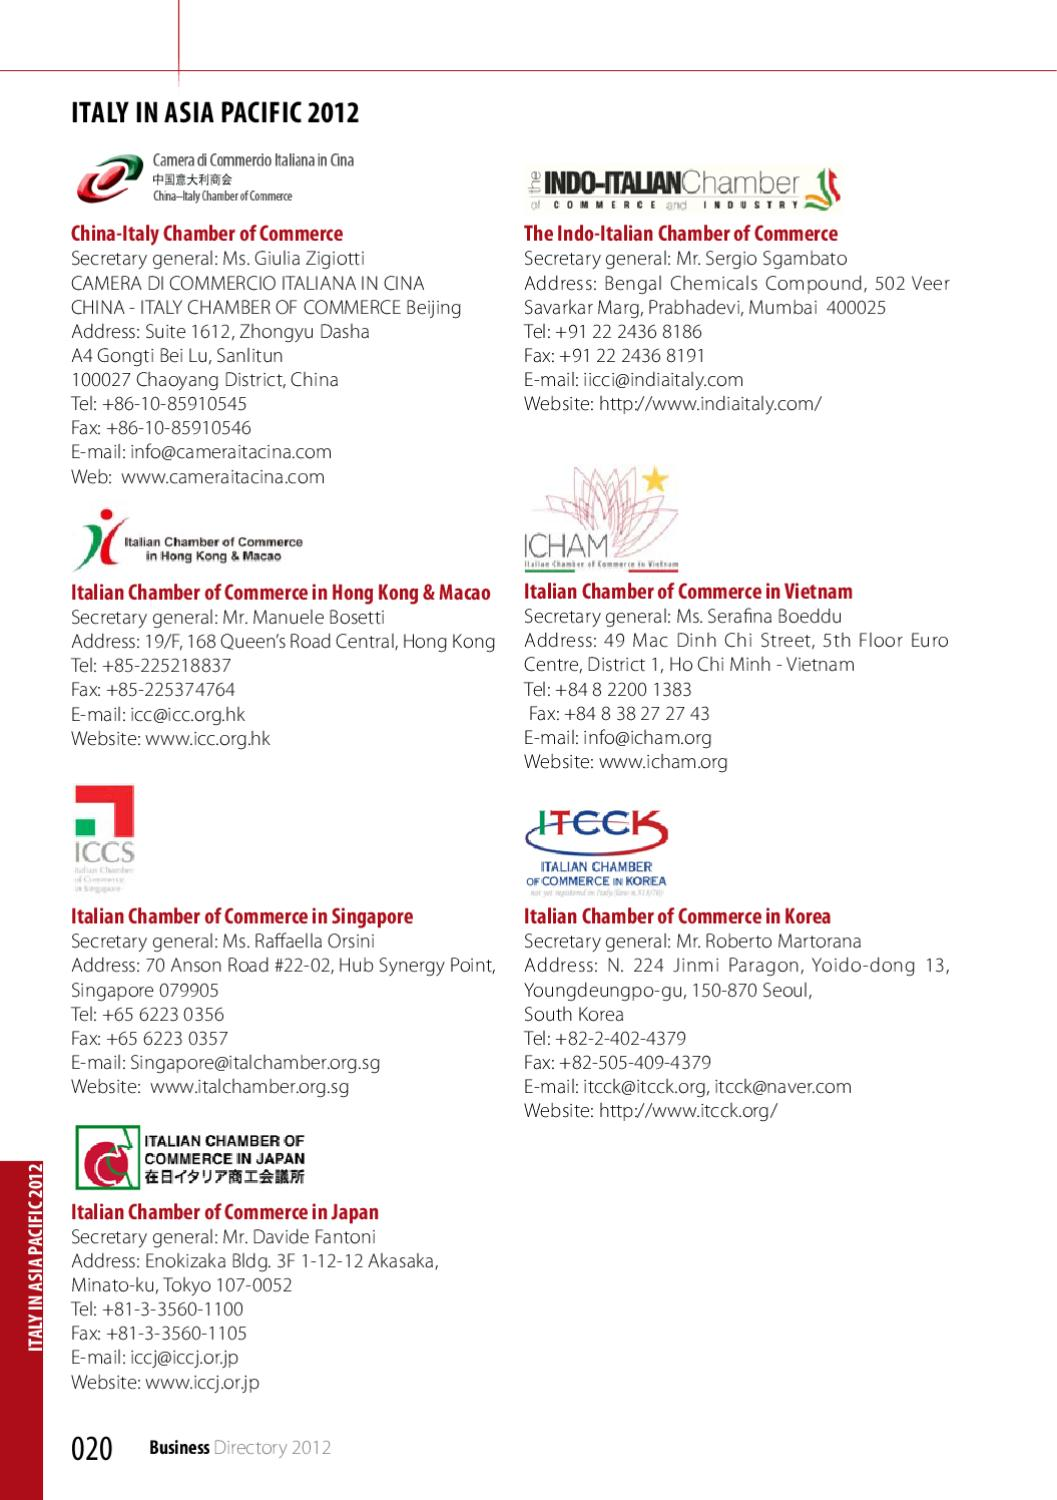 TICC Business Directory 2012 by Thai - Italian Chamber of